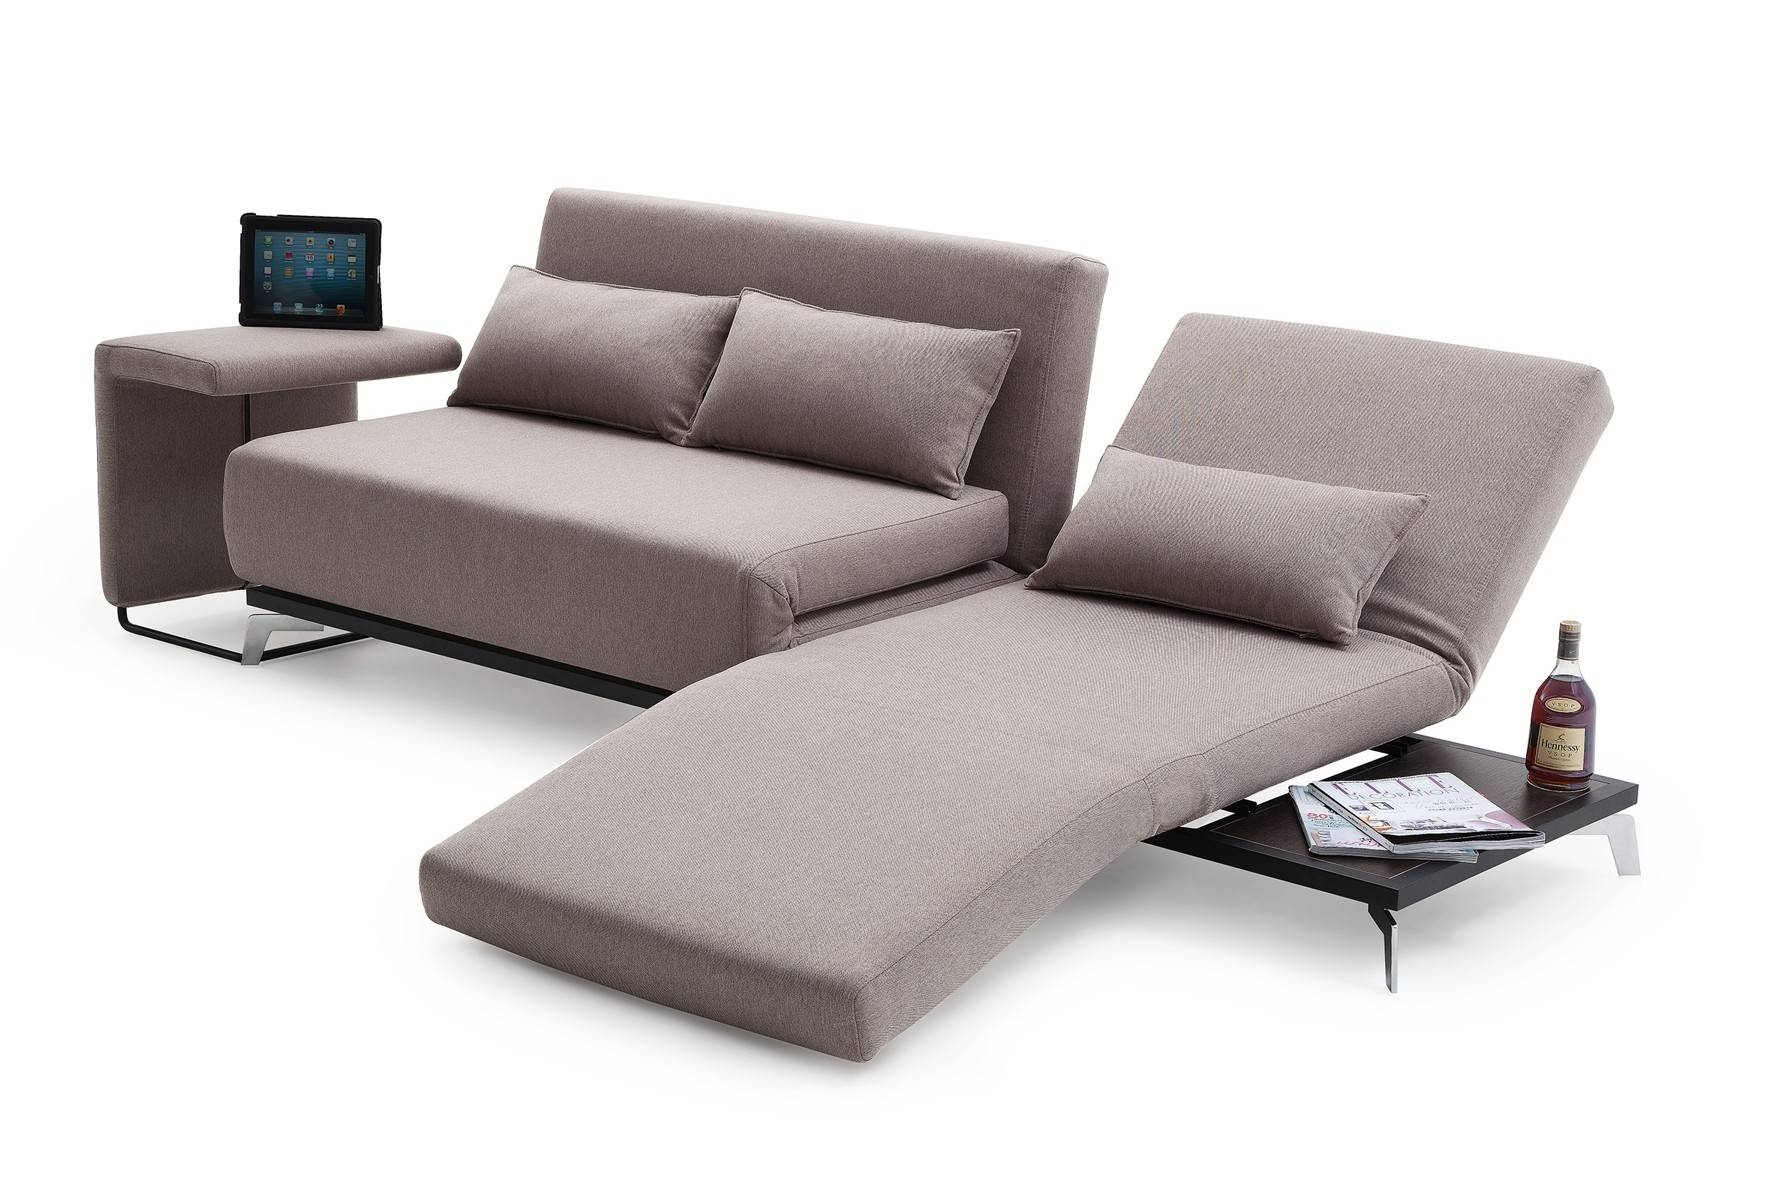 Marvelous Unique Sofa Beds Images Ideas - Andrea Outloud in Cool Sofa Ideas (Image 23 of 30)